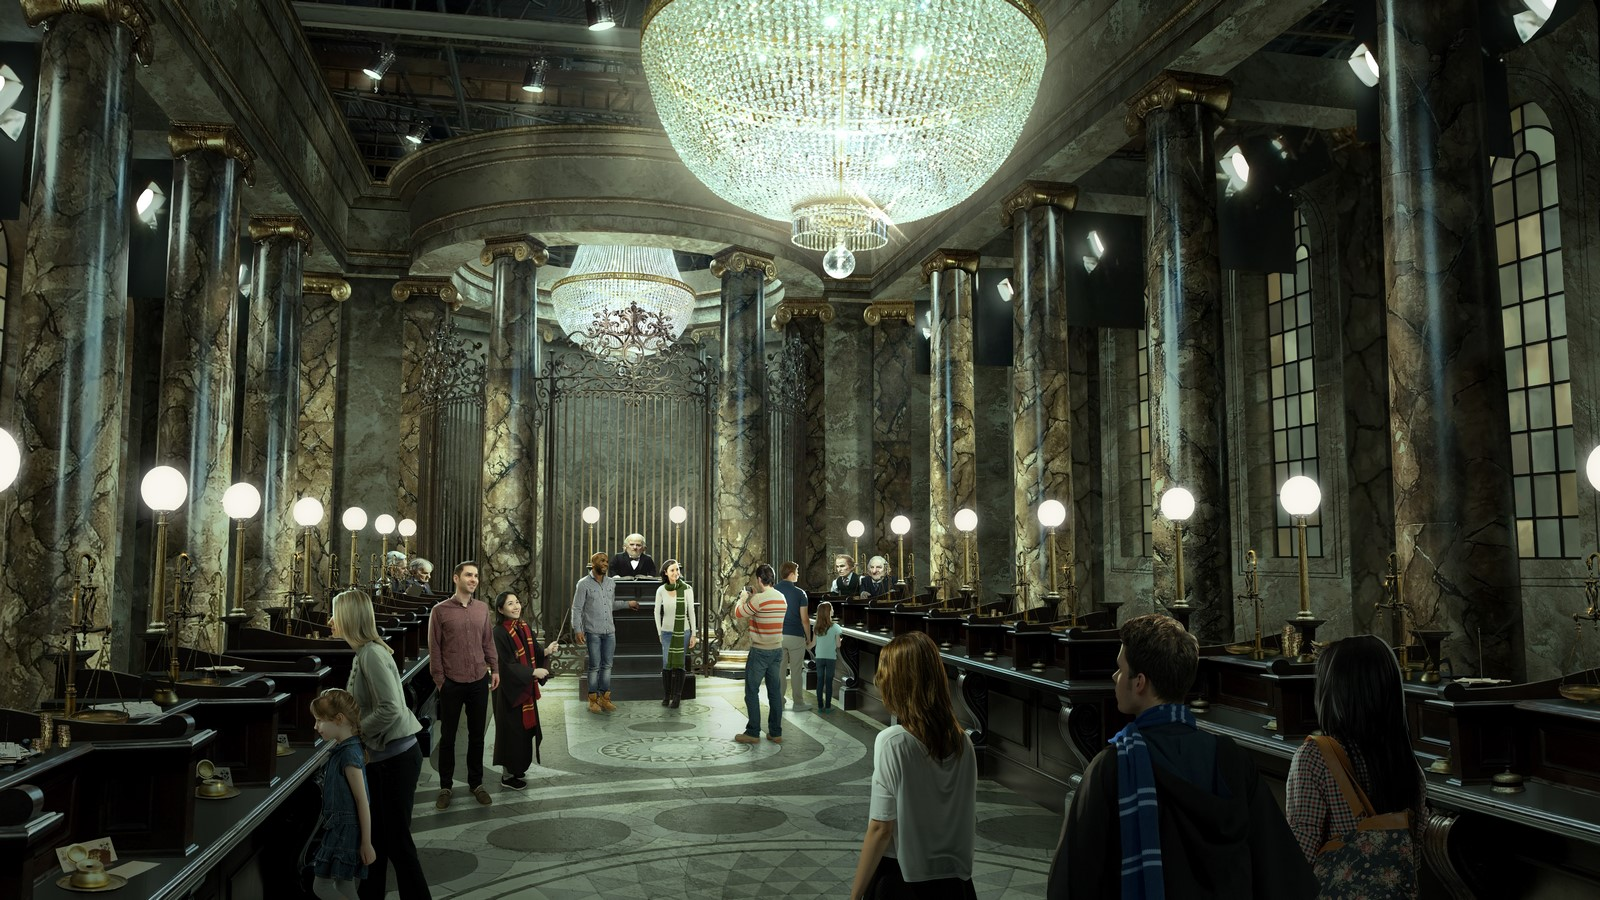 The Wizarding World meets Architectural world - Sheet5